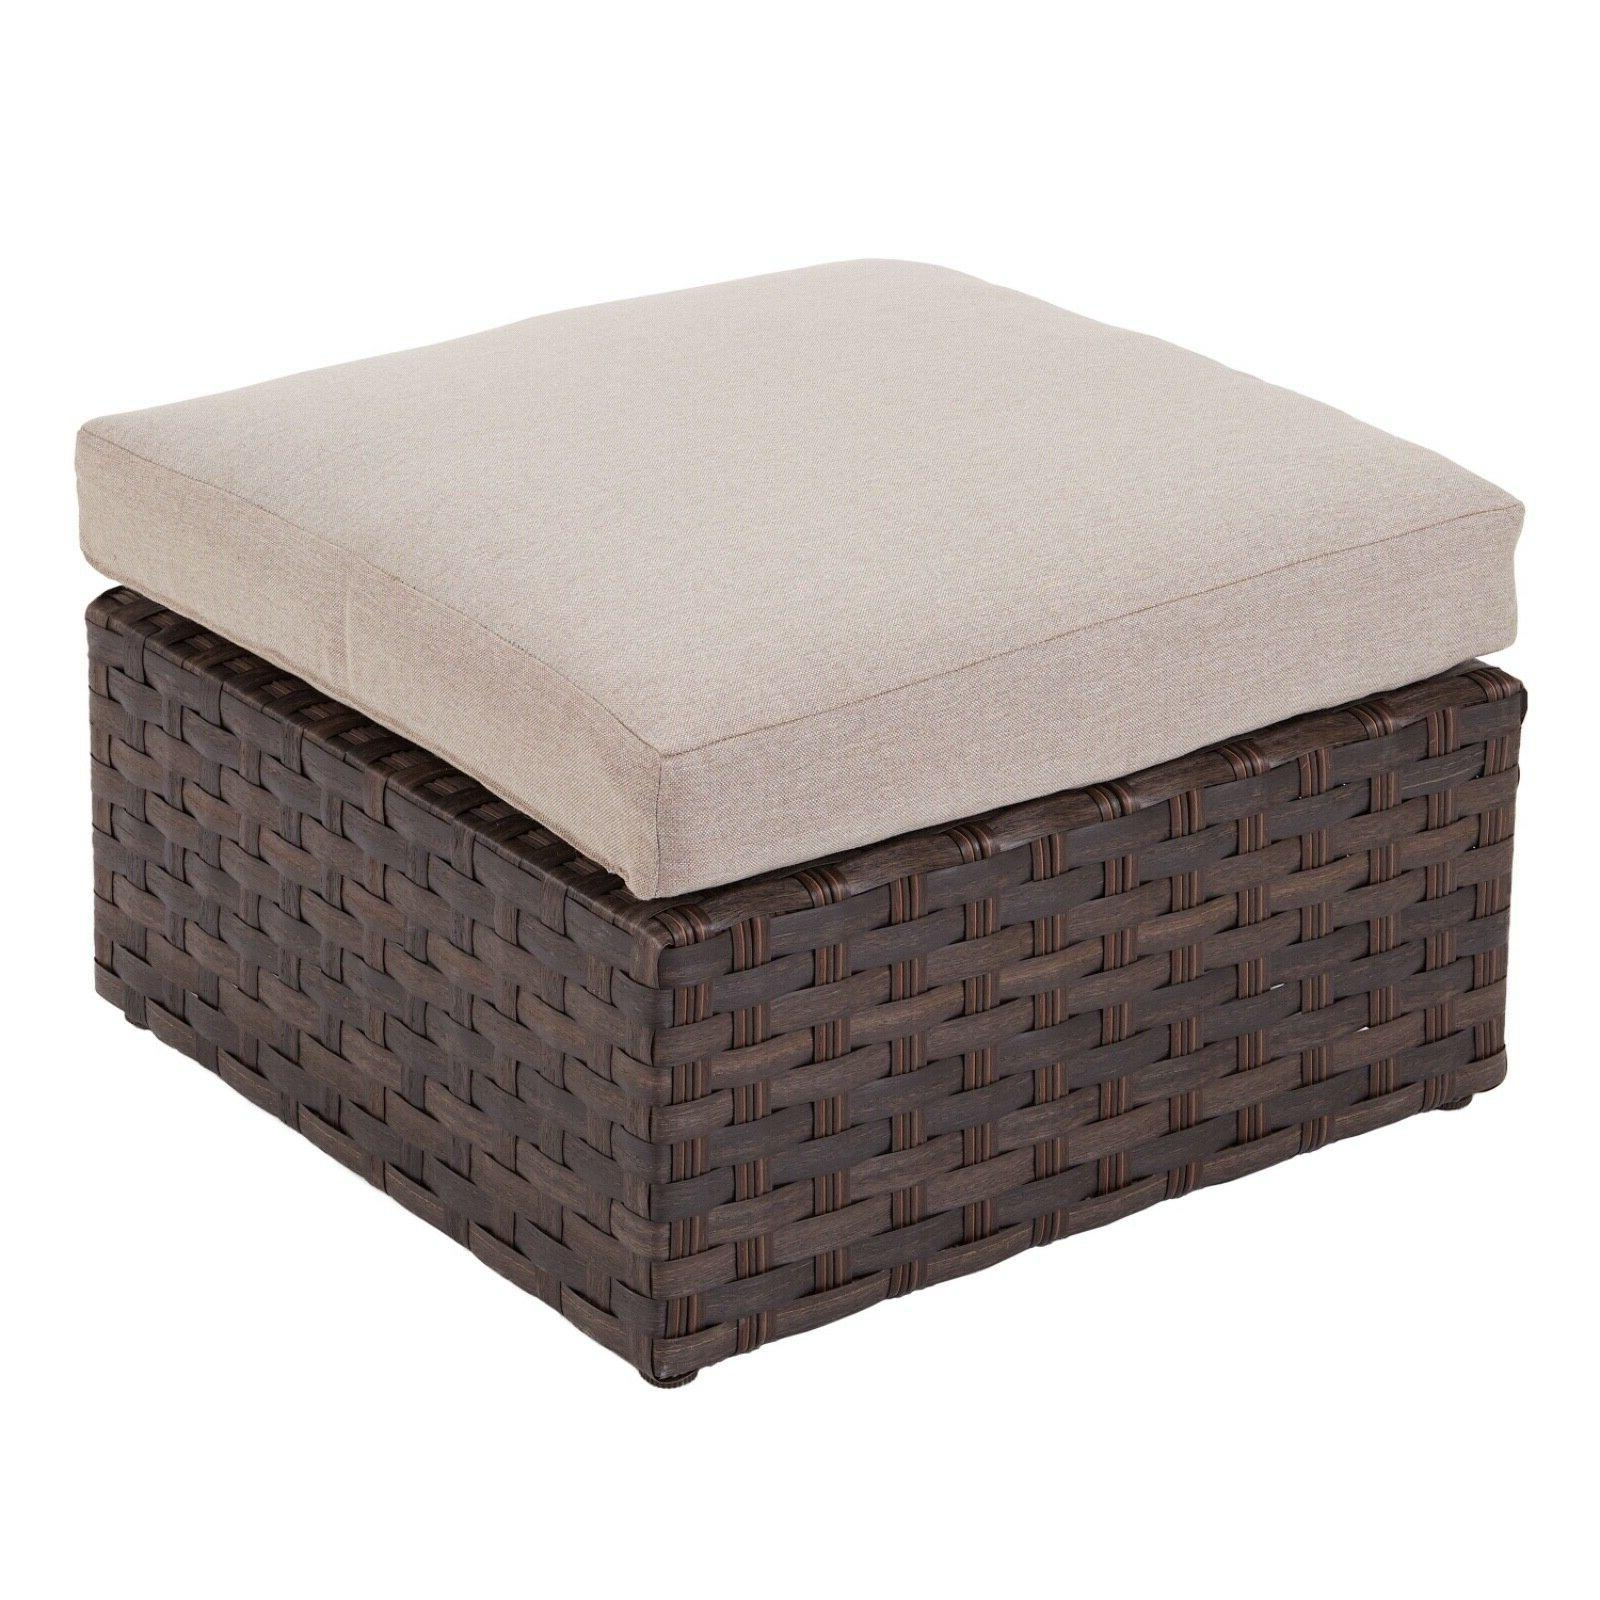 2 piece patio ottoman beige storage bench